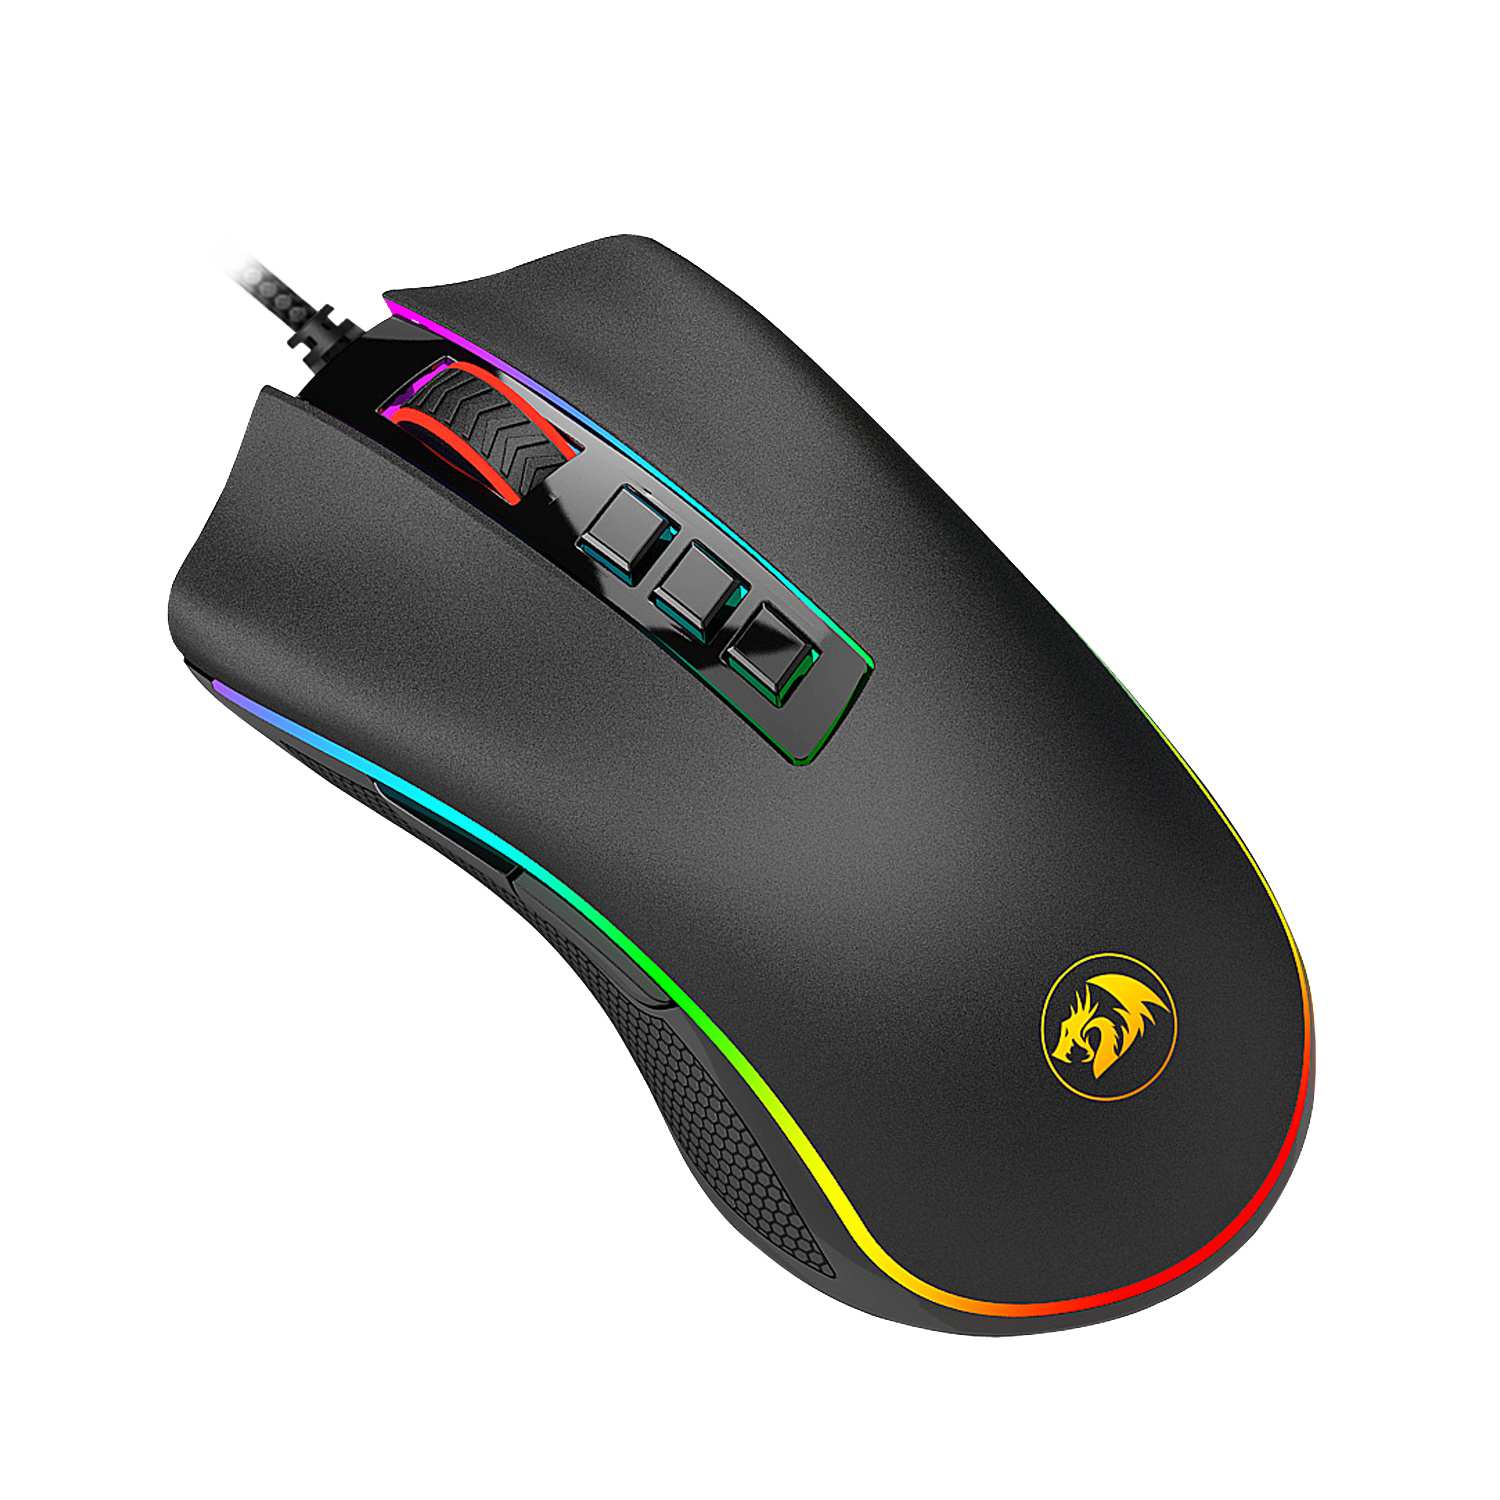 MOUSE REDRAGON M711 COBRA RGB OPTICO 10000DPI